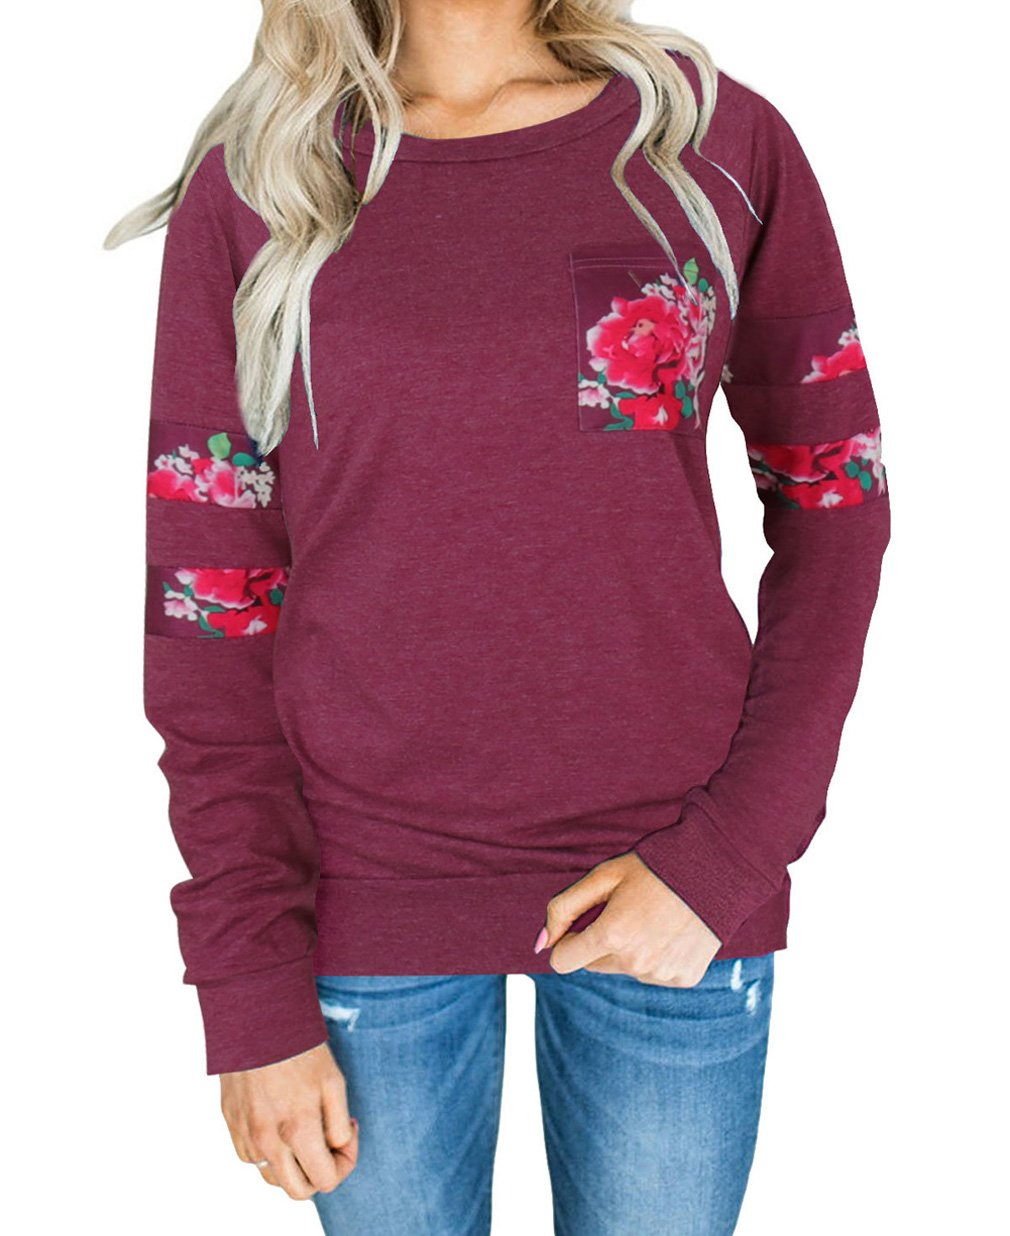 Tomlyws Sweatshirts Long Sleeve Crewneck Casual Loose Pullover Blouse Tops Wine Red L